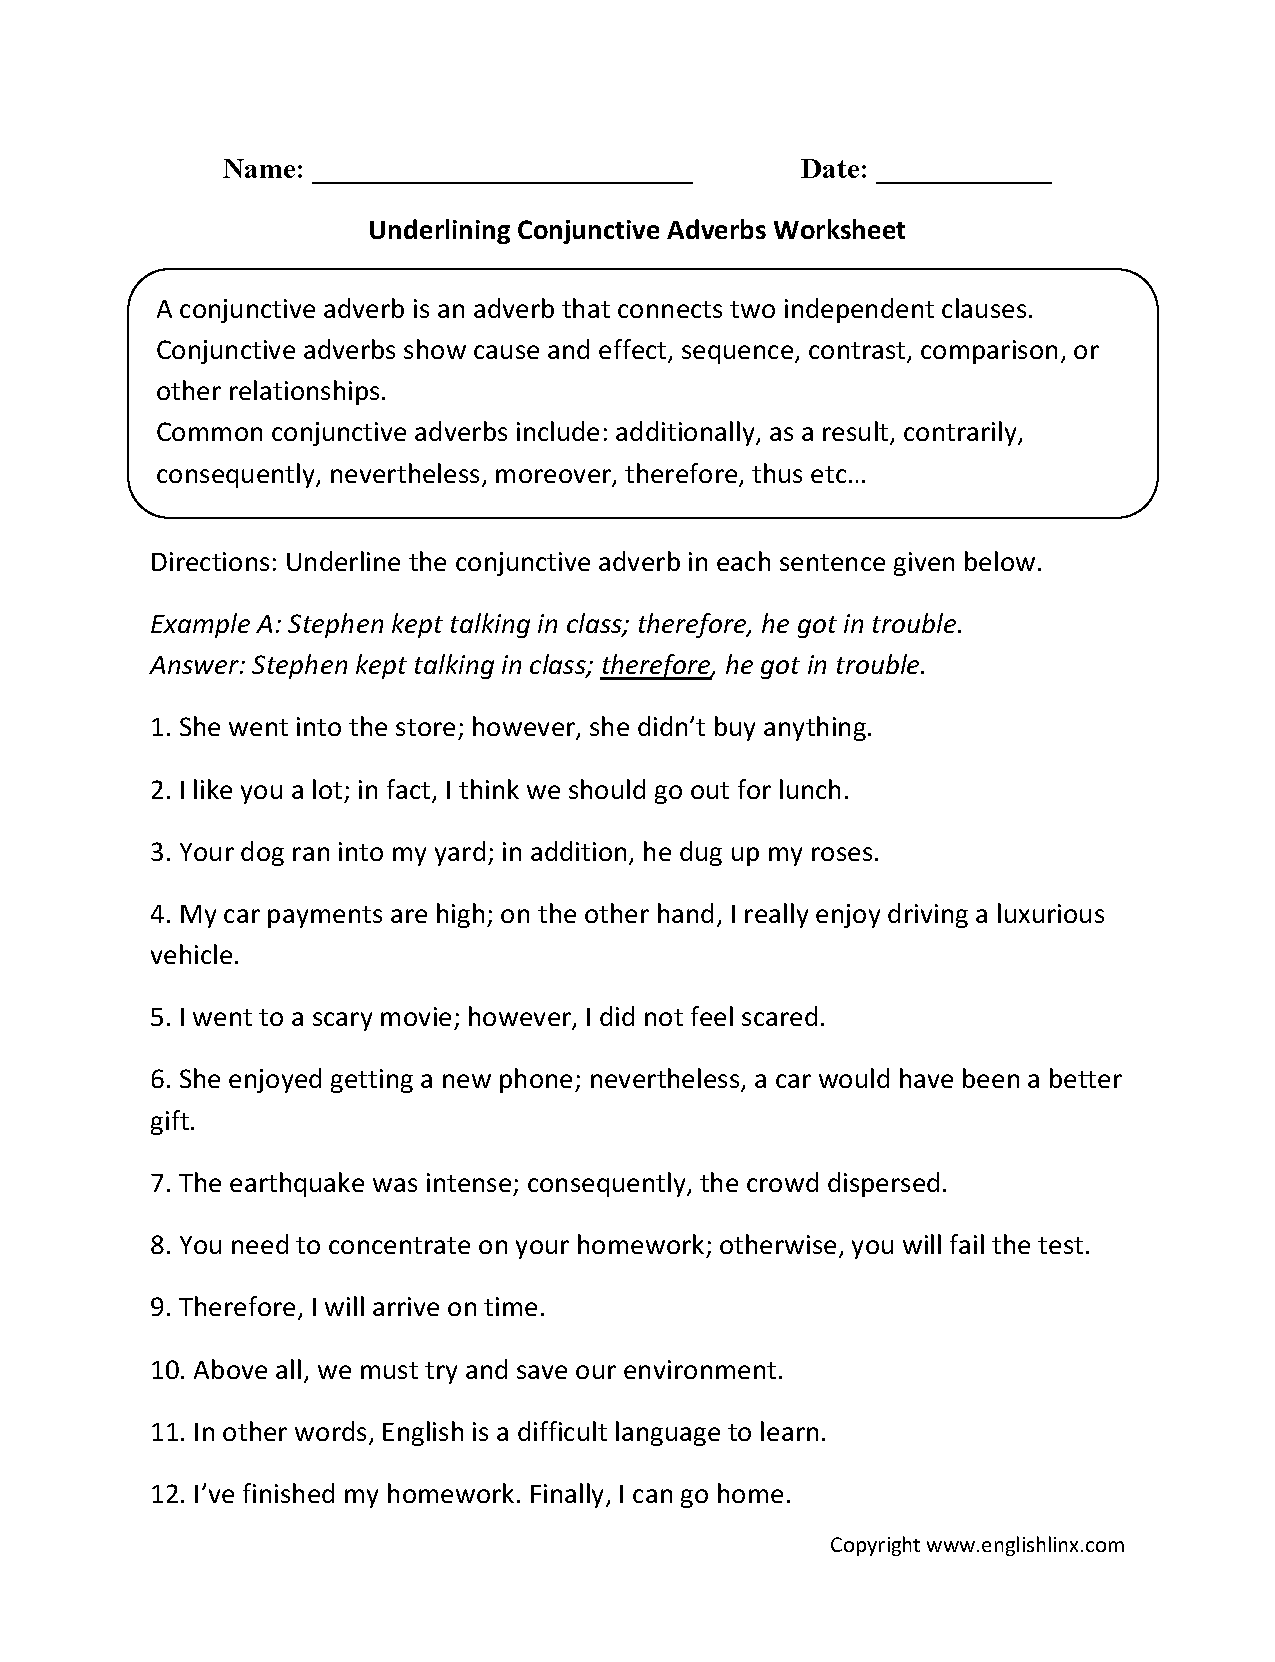 Weirdmailus  Ravishing Englishlinxcom  Conjunctions Worksheets With Magnificent Worksheet With Beauteous Th Grade Main Idea Worksheets Also Be Verb Worksheet In Addition Identifying Rocks Worksheet And Circle Theorems Worksheet And Answers As Well As Multiplication Facts      Worksheets Additionally Ratio Worksheet Th Grade From Englishlinxcom With Weirdmailus  Magnificent Englishlinxcom  Conjunctions Worksheets With Beauteous Worksheet And Ravishing Th Grade Main Idea Worksheets Also Be Verb Worksheet In Addition Identifying Rocks Worksheet From Englishlinxcom